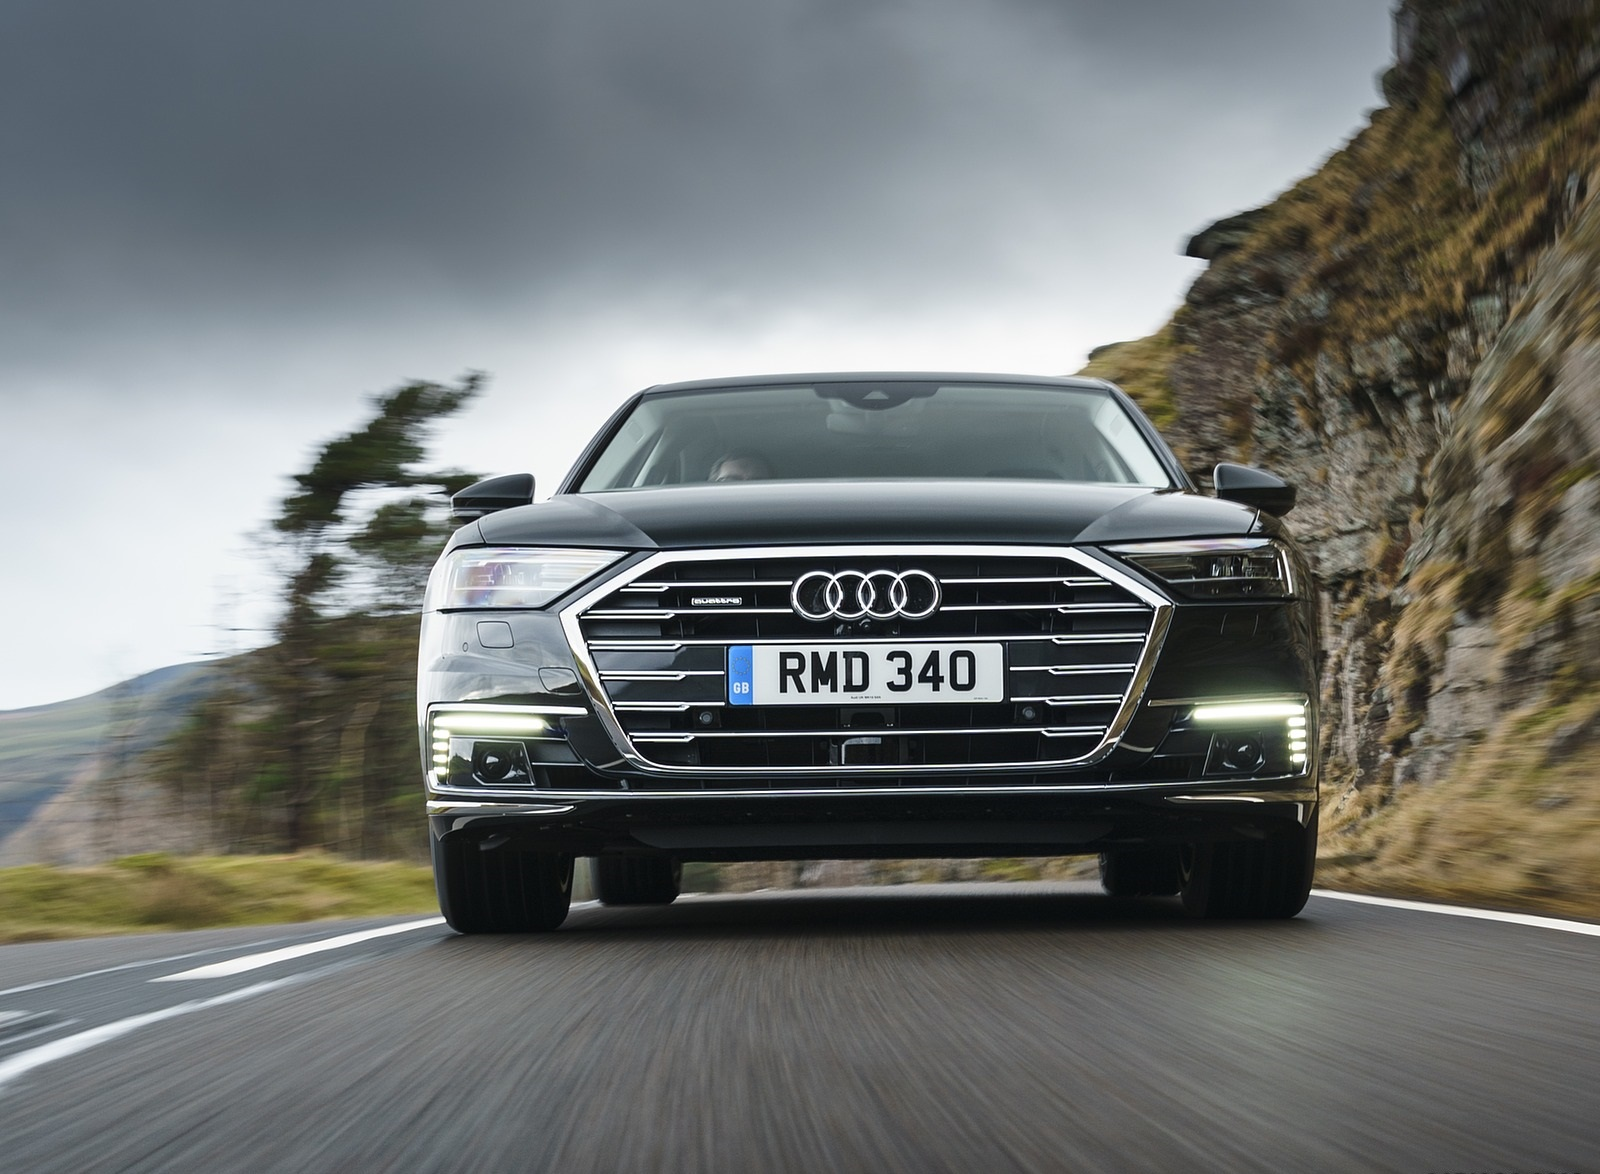 2020 Audi A8 L 60 TFSI e quattro (Plug-In Hybrid UK-Spec) Front Wallpapers (9)